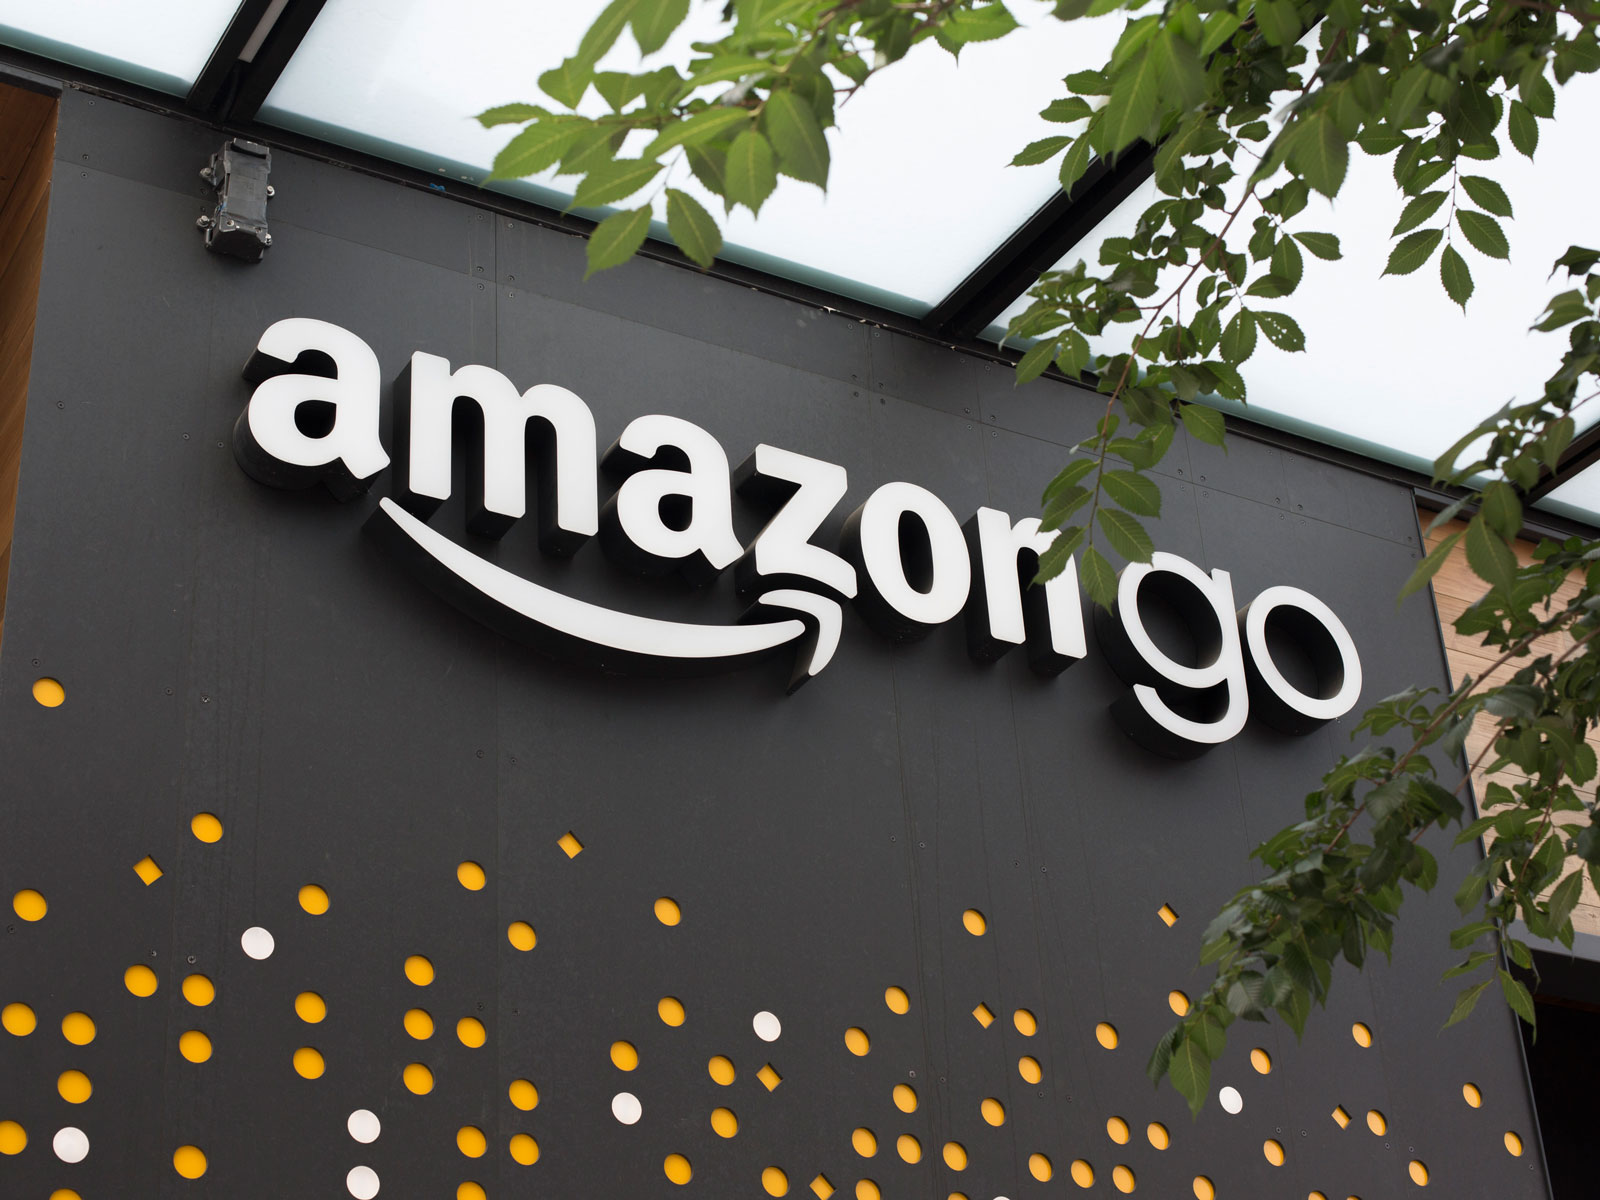 amazon-grocery-stores-FT-BLOG0319.jpg